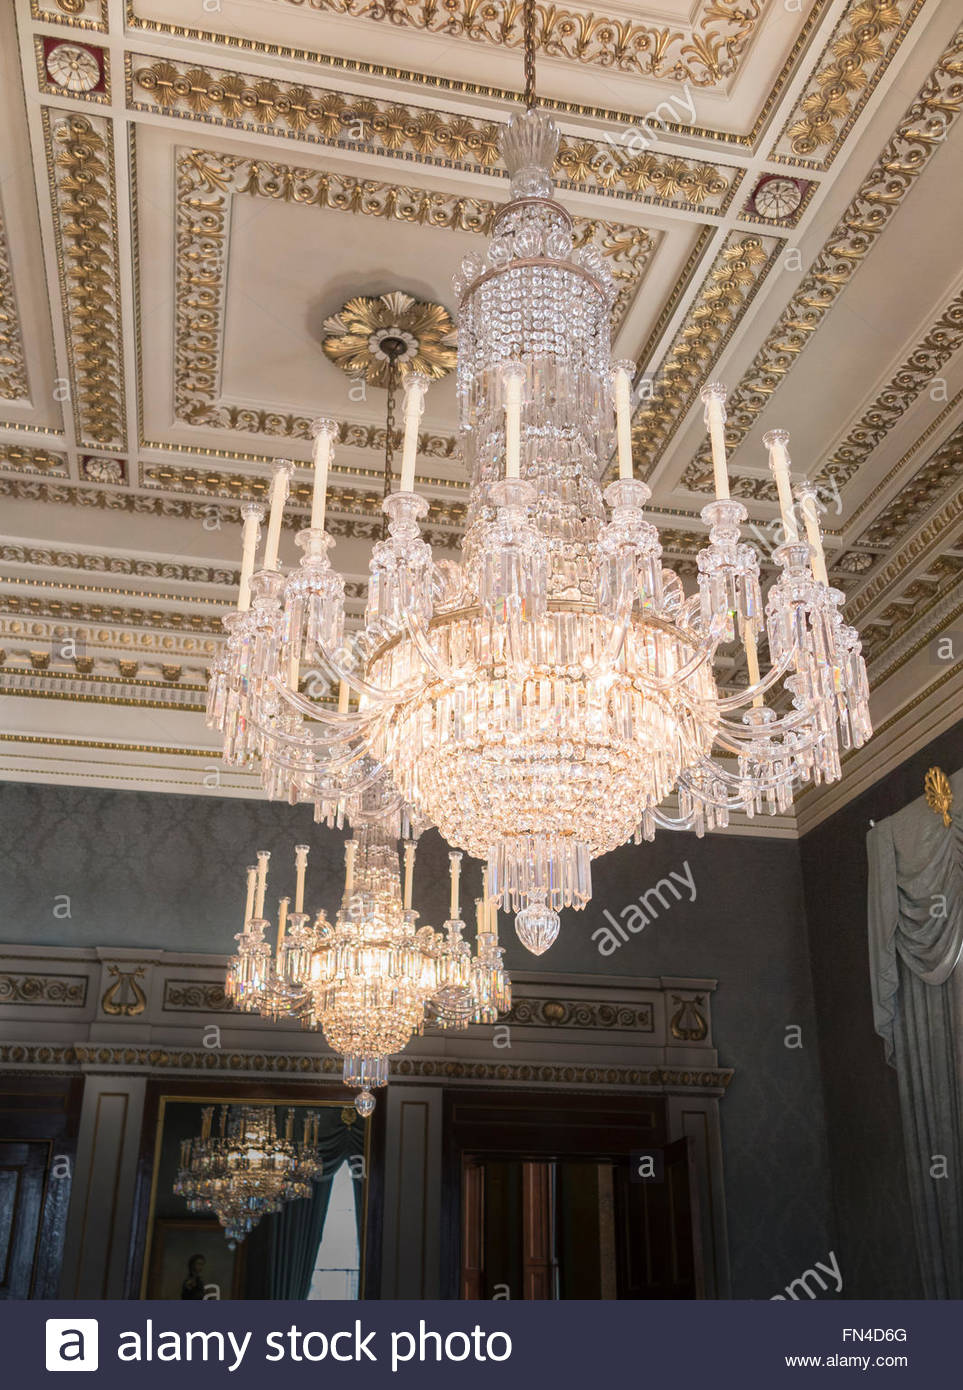 963x1390 Beautiful Crystal Chandeliers In The Court Drawing Room